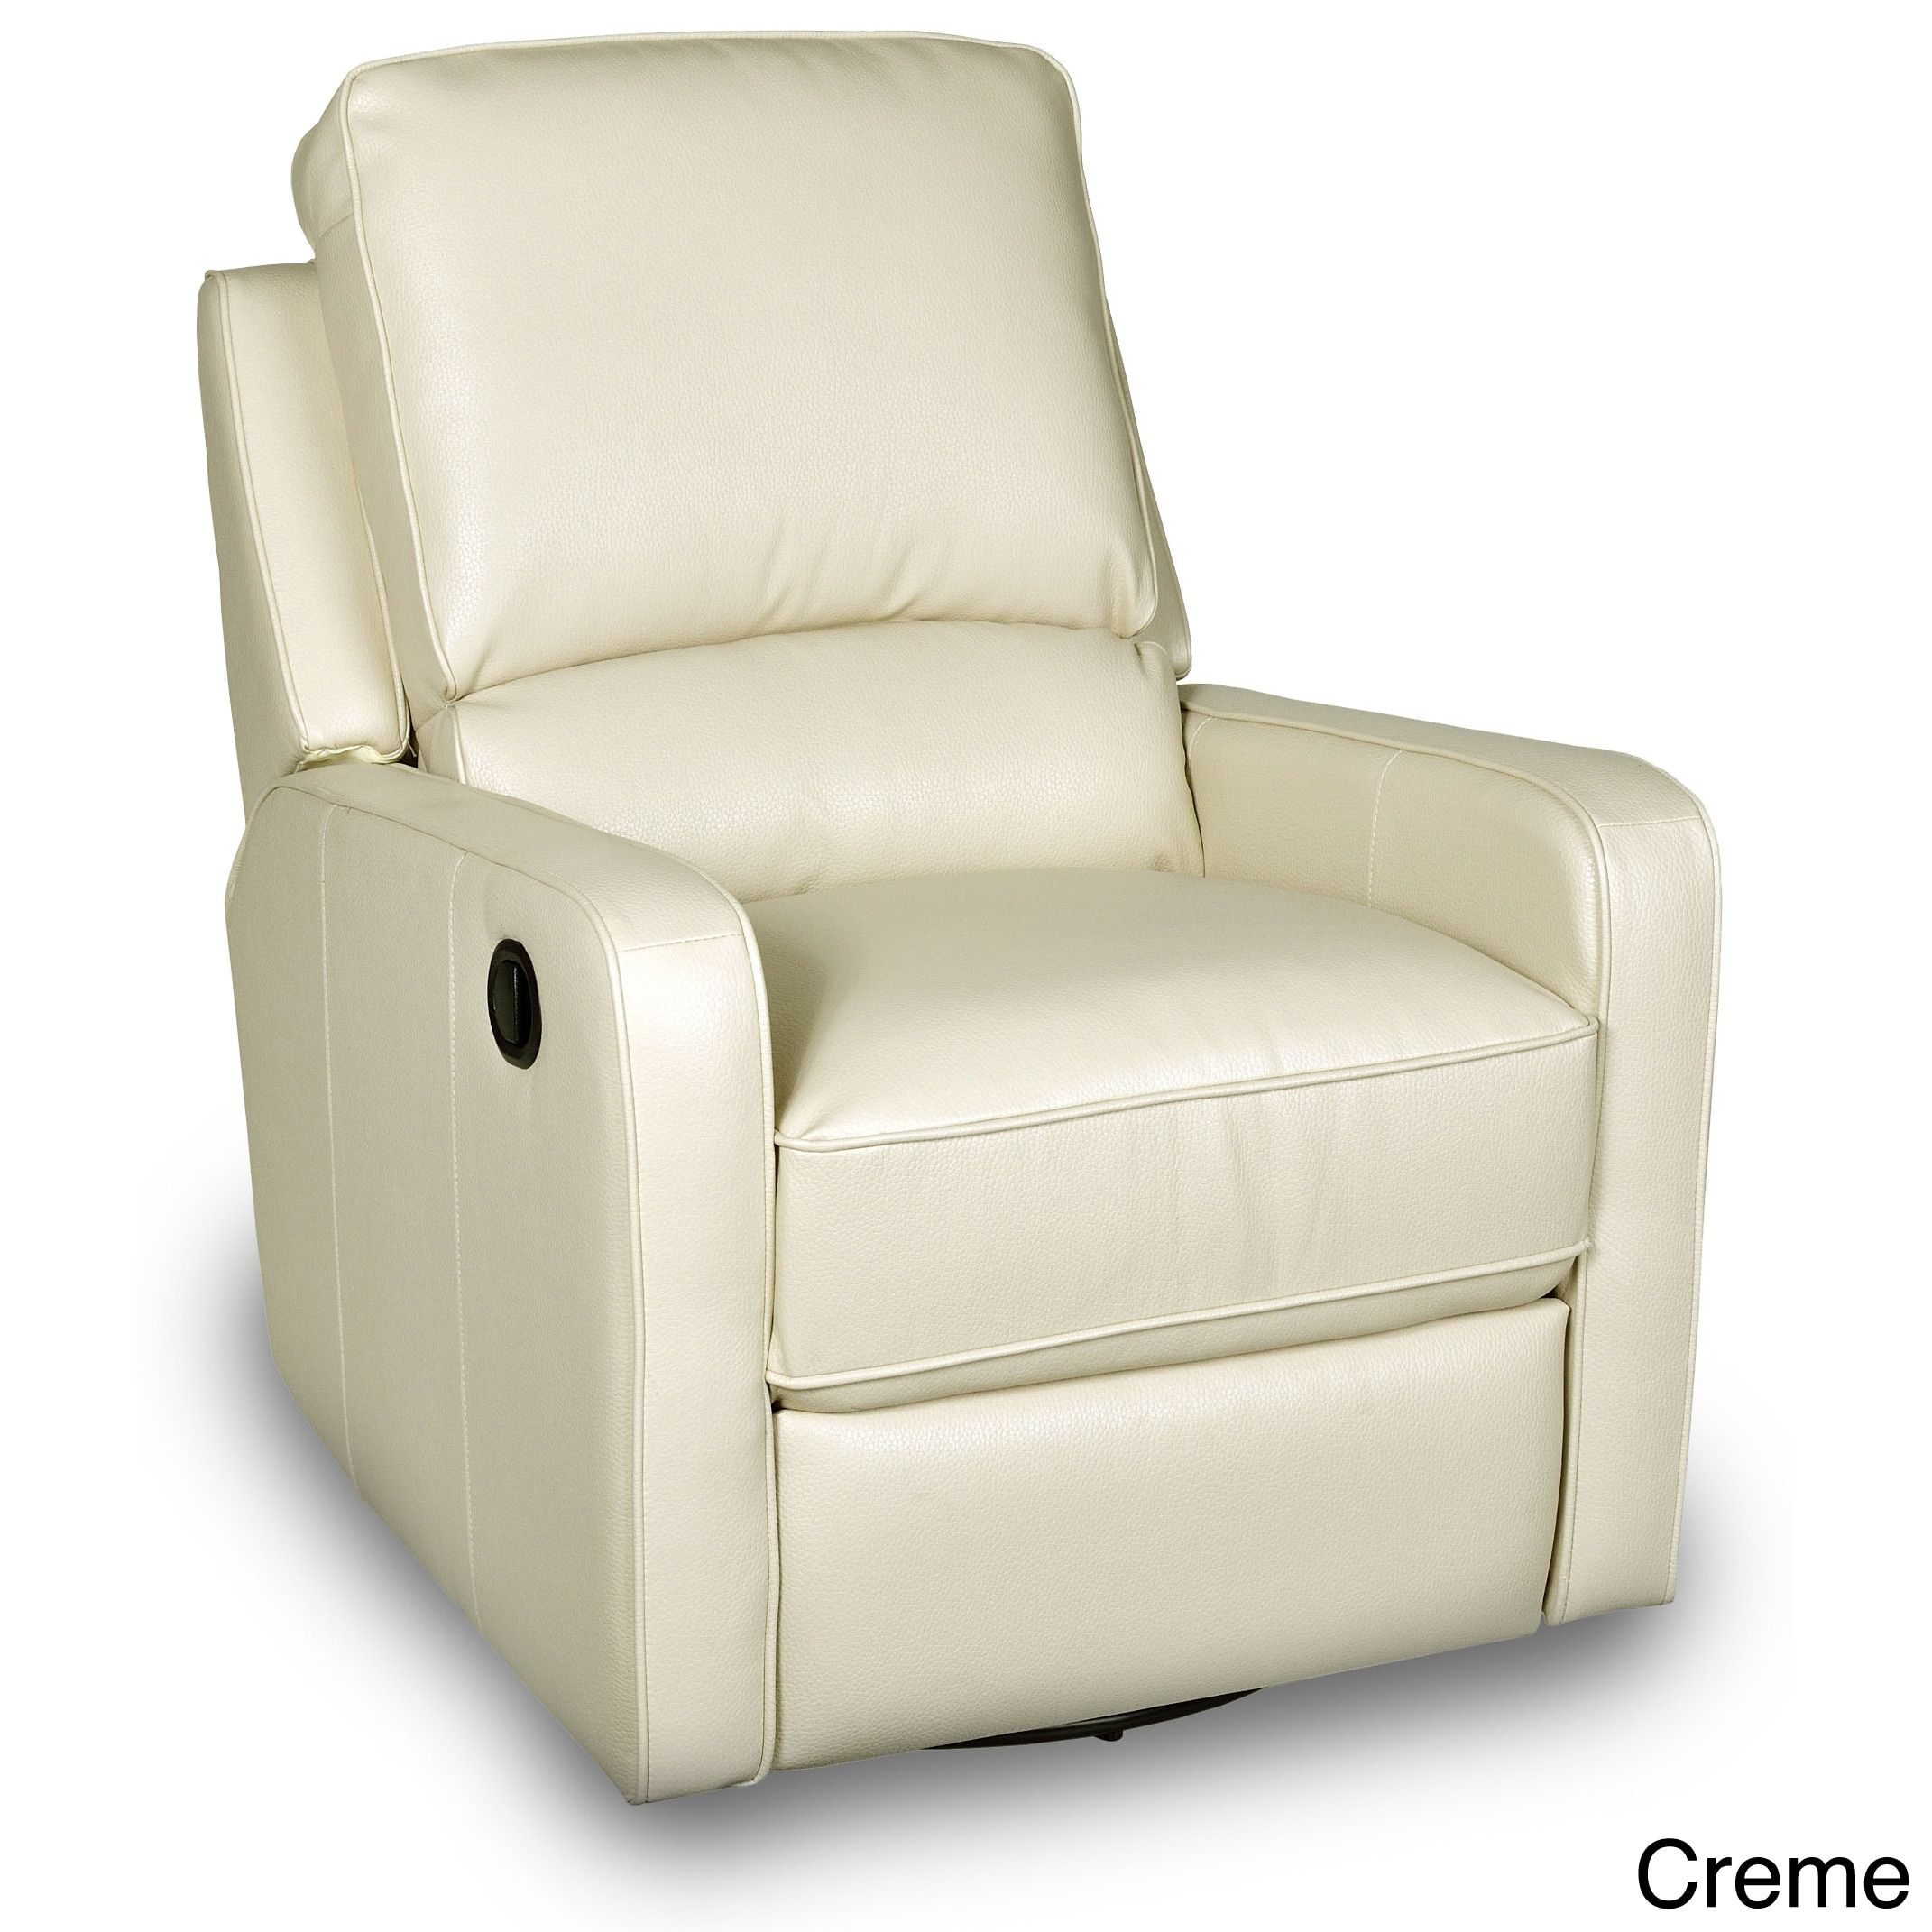 Opulence Home Perth Leather Swivel Glider Recliner (Creme), Beige, Size  Standard (